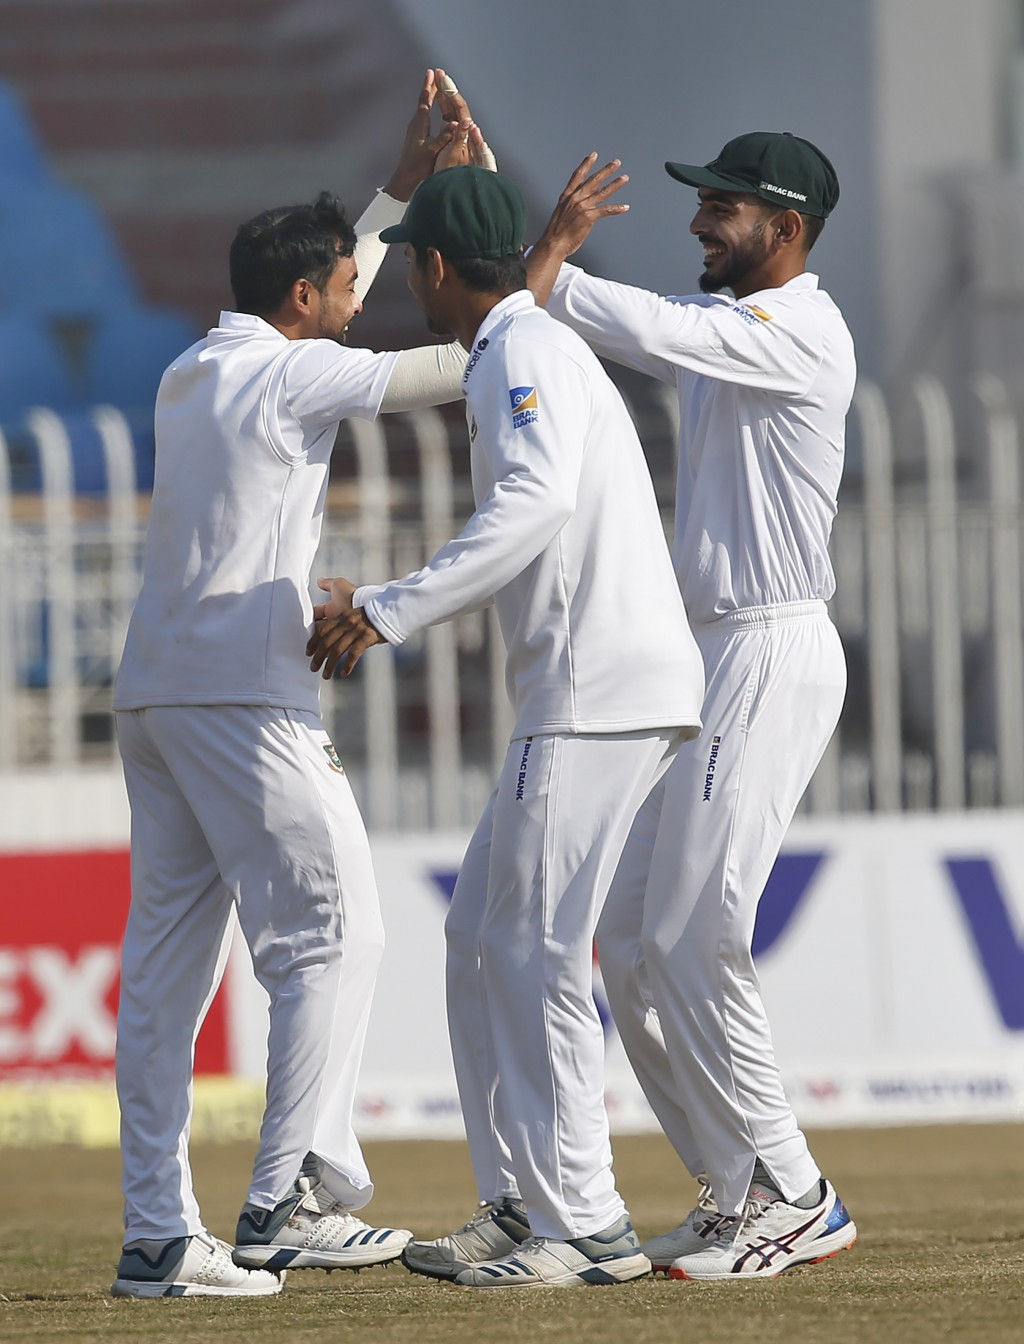 Bangladesh pacer Abu Jayed, left, celebrates with teammates after taking the wicket of Pakistan batsman Babar Azam during the third day of their 1st t...